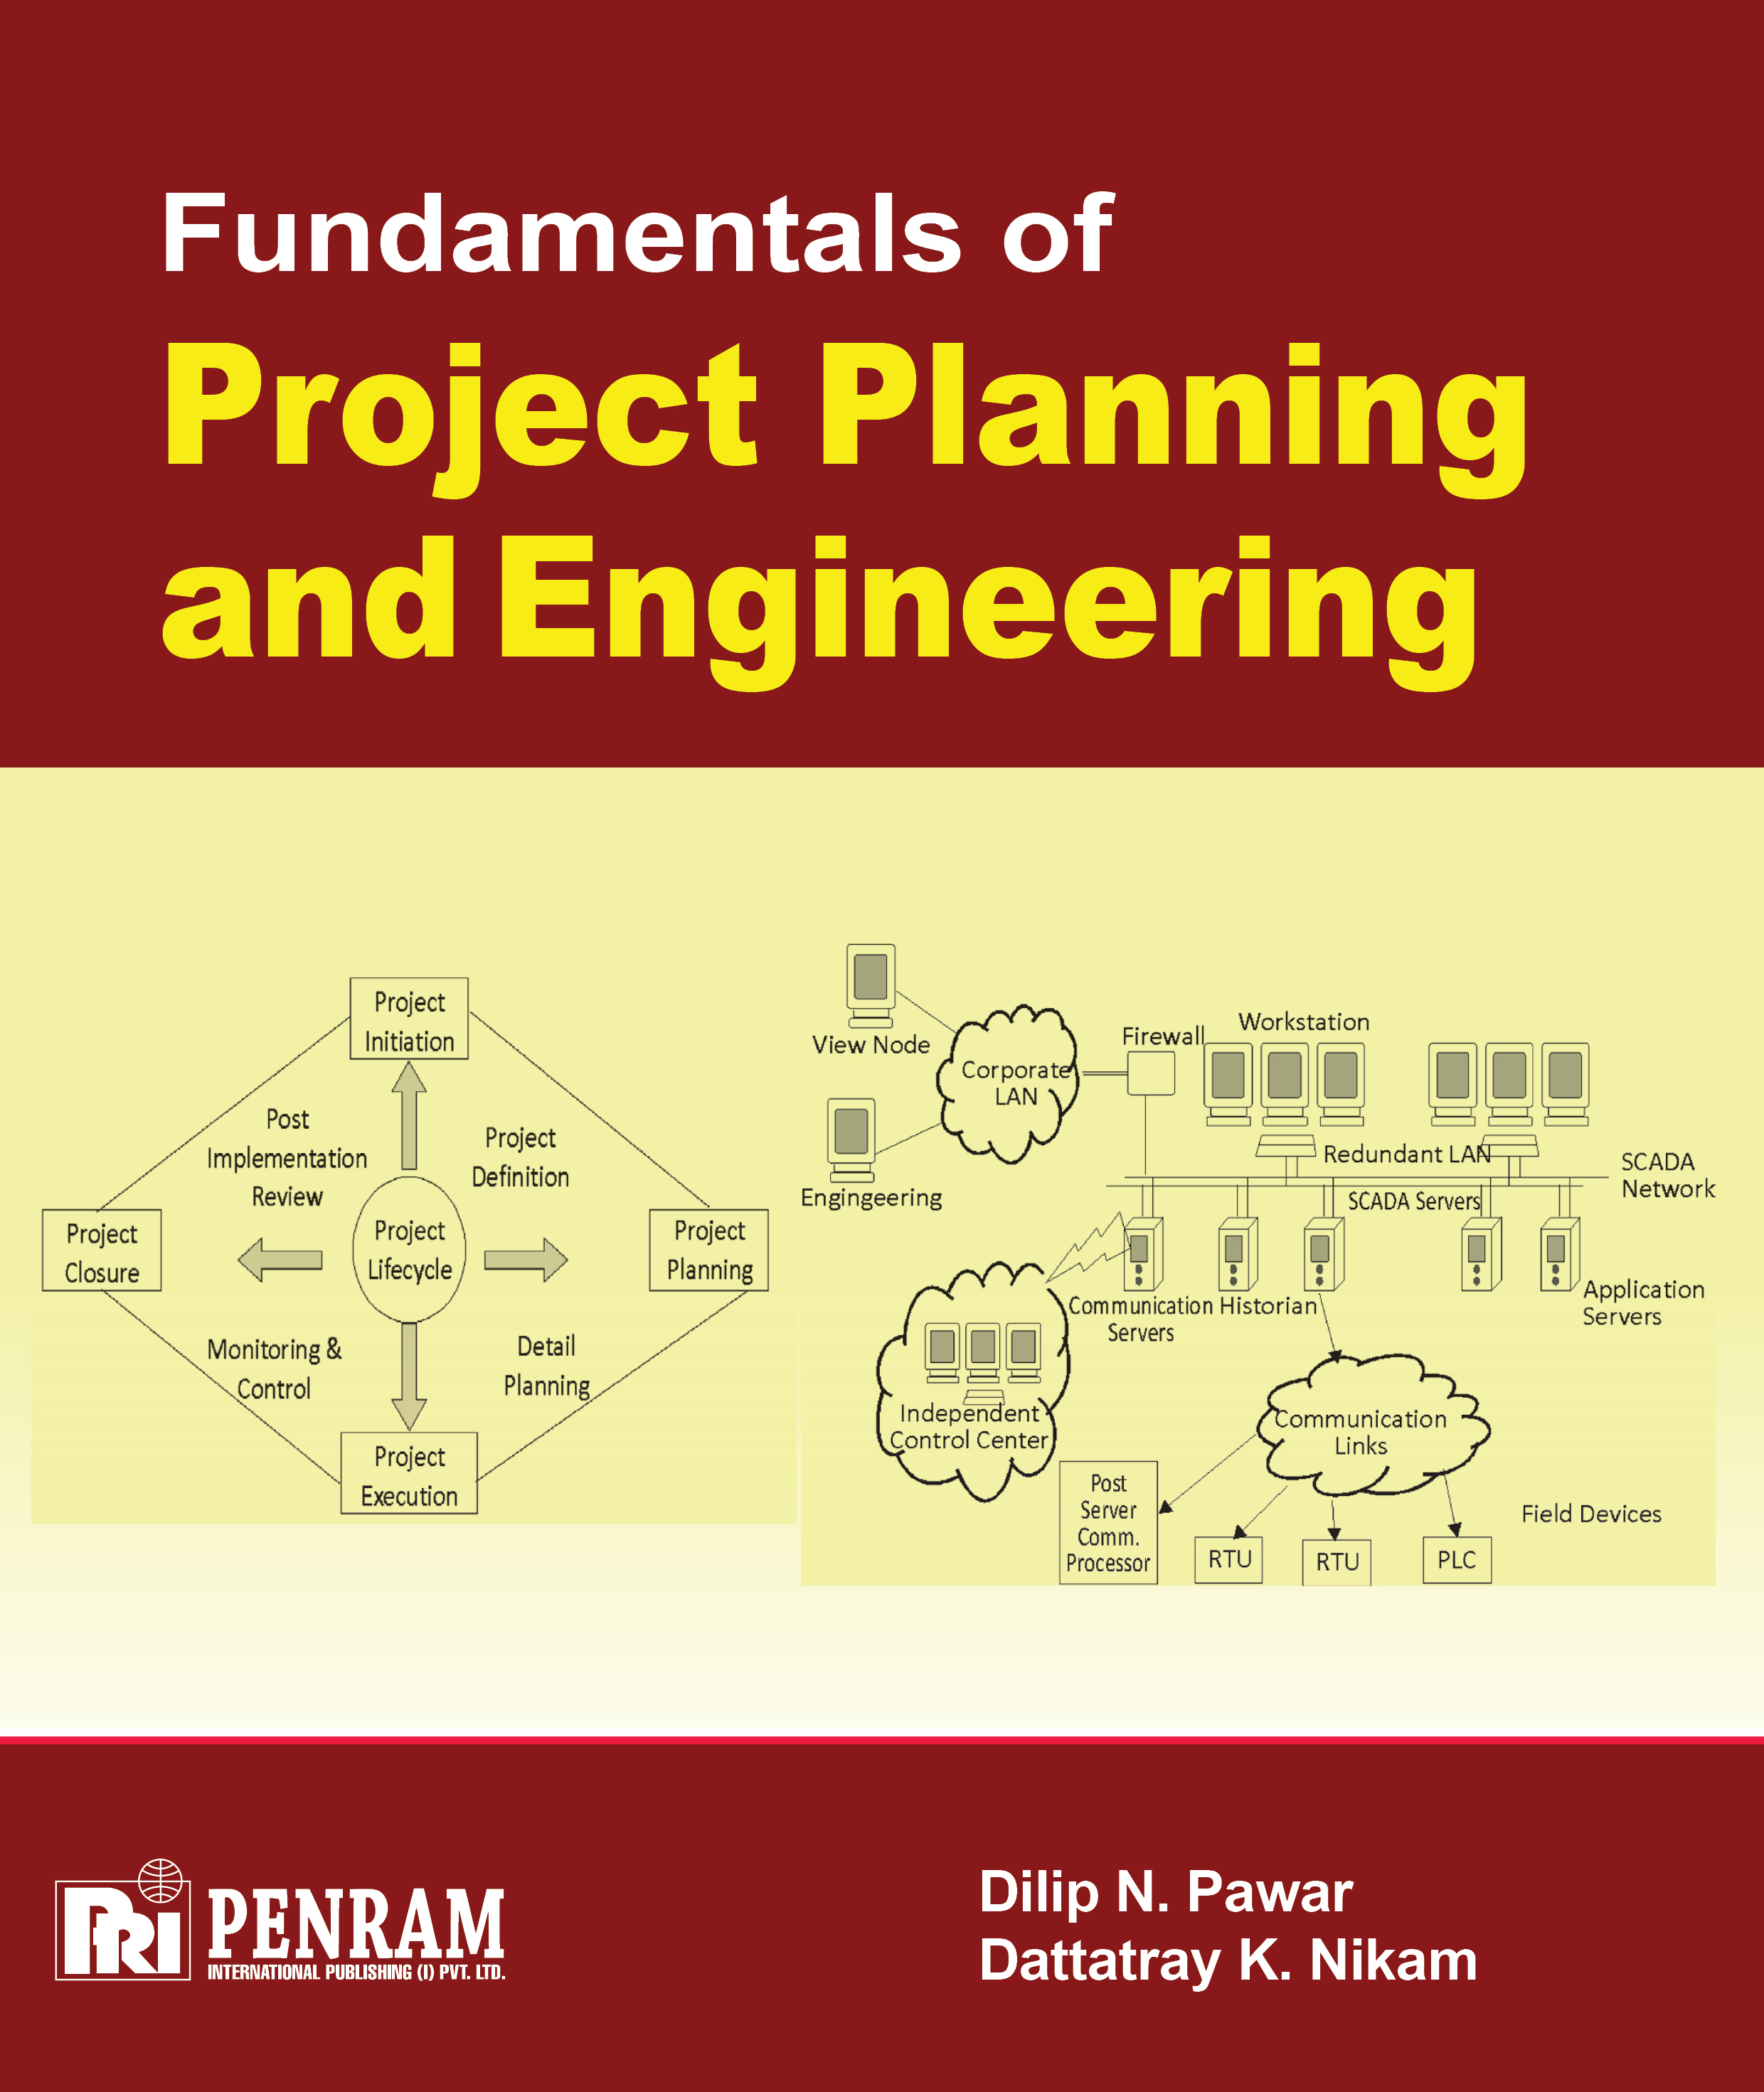 Book on fundamentals of project planning and engineering size chart nvjuhfo Choice Image